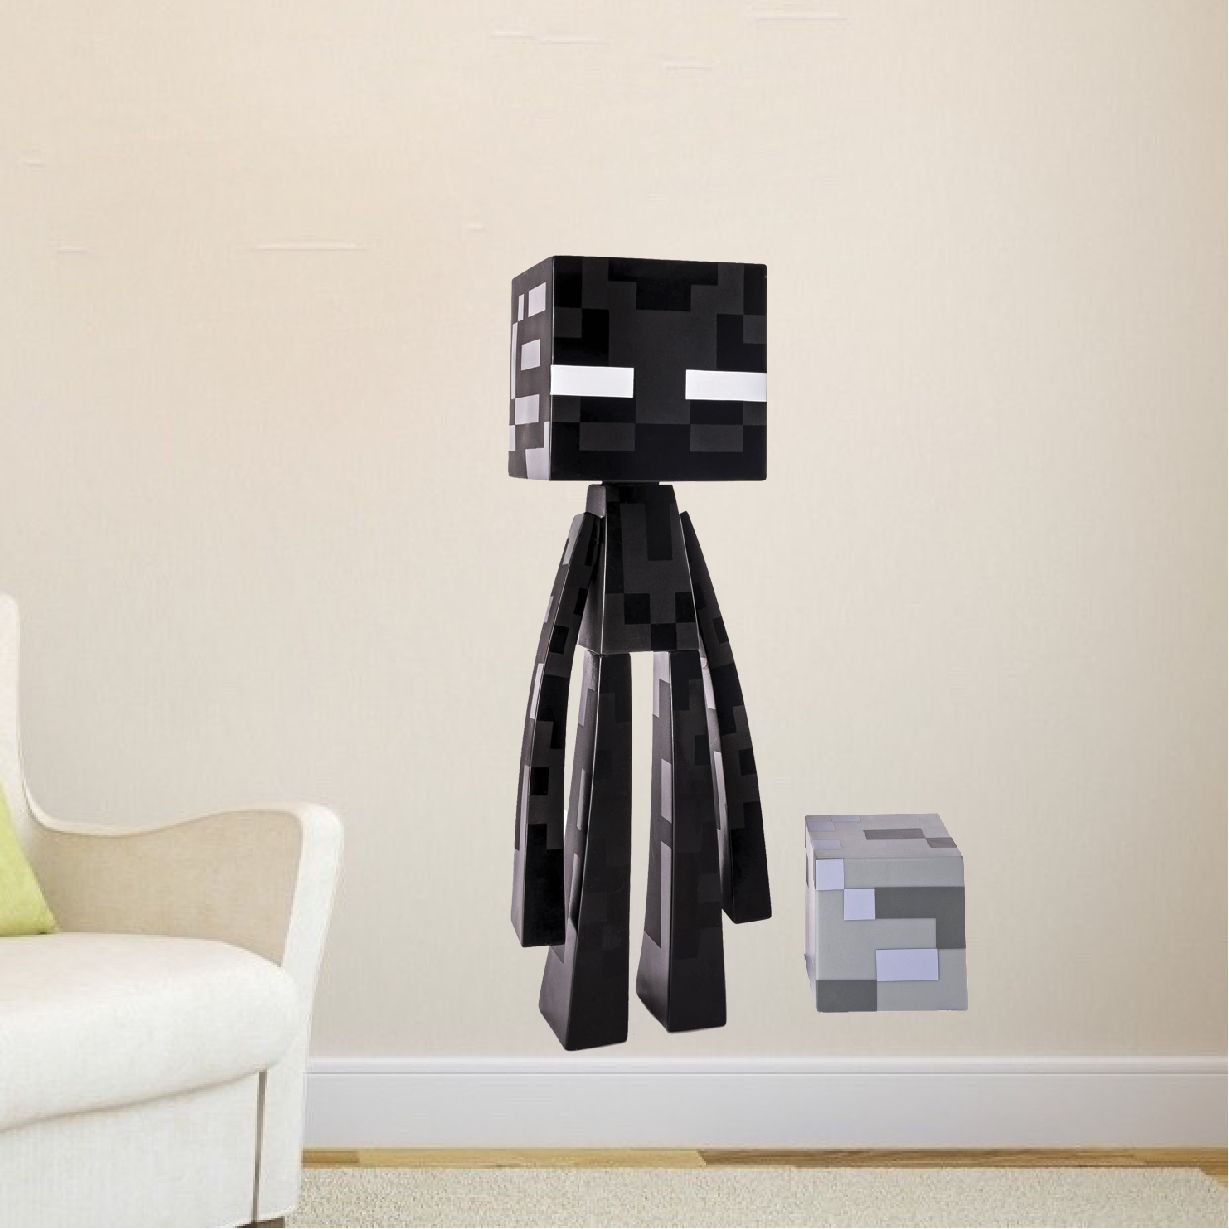 Minecraft Enderman Bedroom Wall Decal - Minecraft Wall Design Stickers - Video Game Wall Decal Murals | Primedecals & Minecraft Enderman Bedroom Wall Decal - Minecraft Wall Design ...